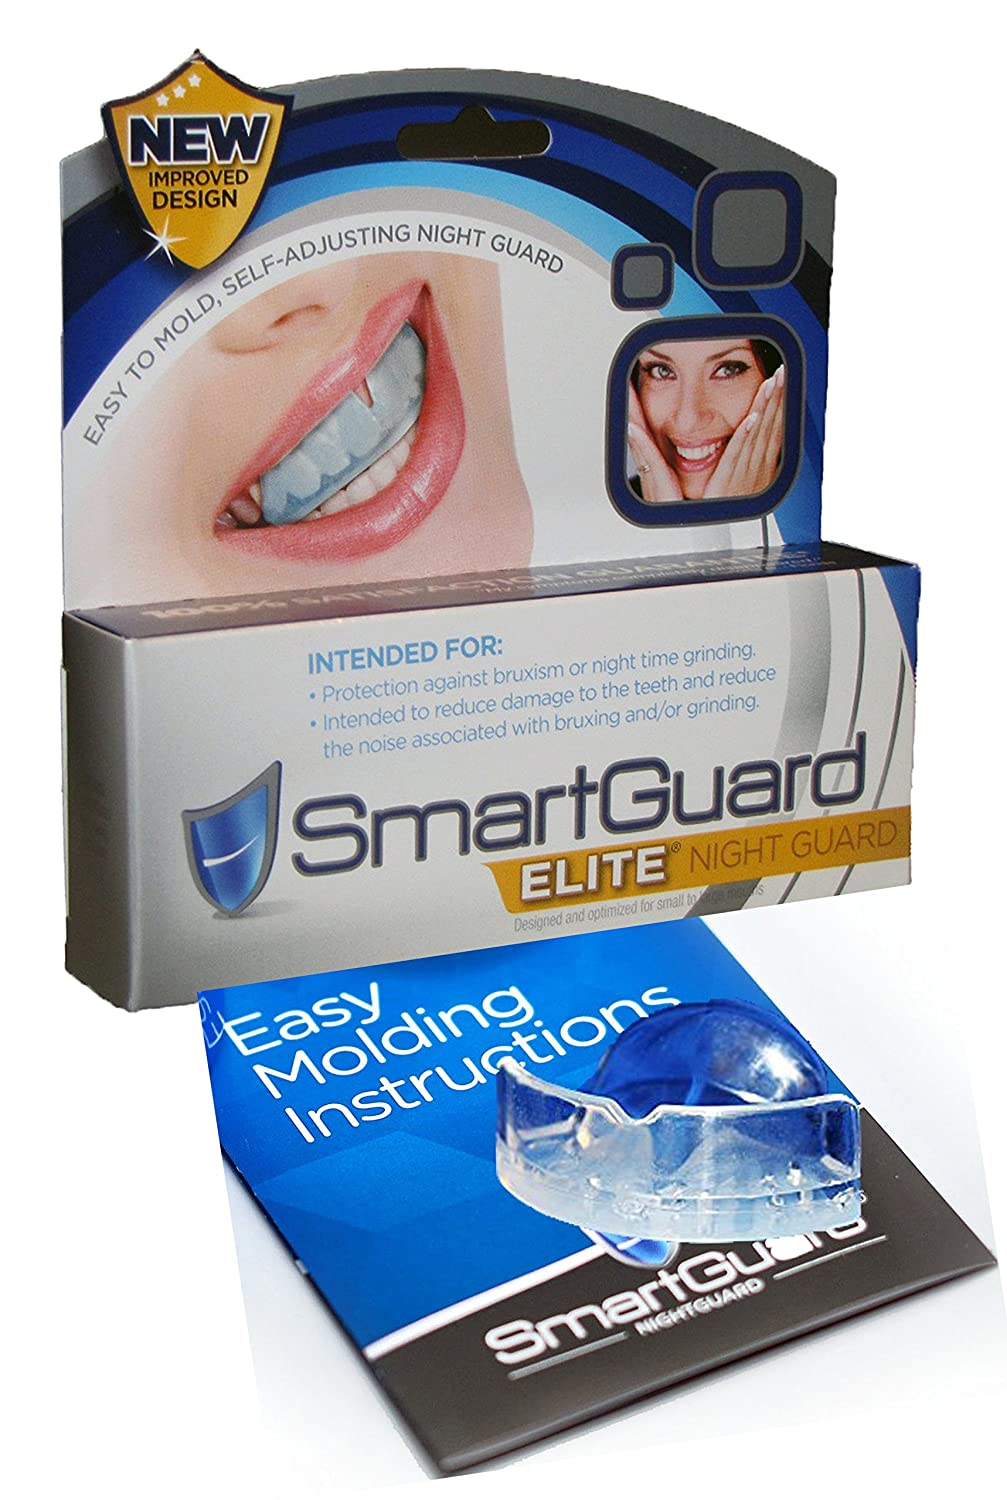 SmartGuard Elite - NEW IMPROVED Night Guard For Teeth Grinding and Bruxism - Mouthguard for Teeth Dental Bite Splint Appliance. TMJ Dentist Designed For Relief of Symptoms of Night Time Clenching and Grinding, May Include Jaw Pain. 100% Guarantee! SmartGua